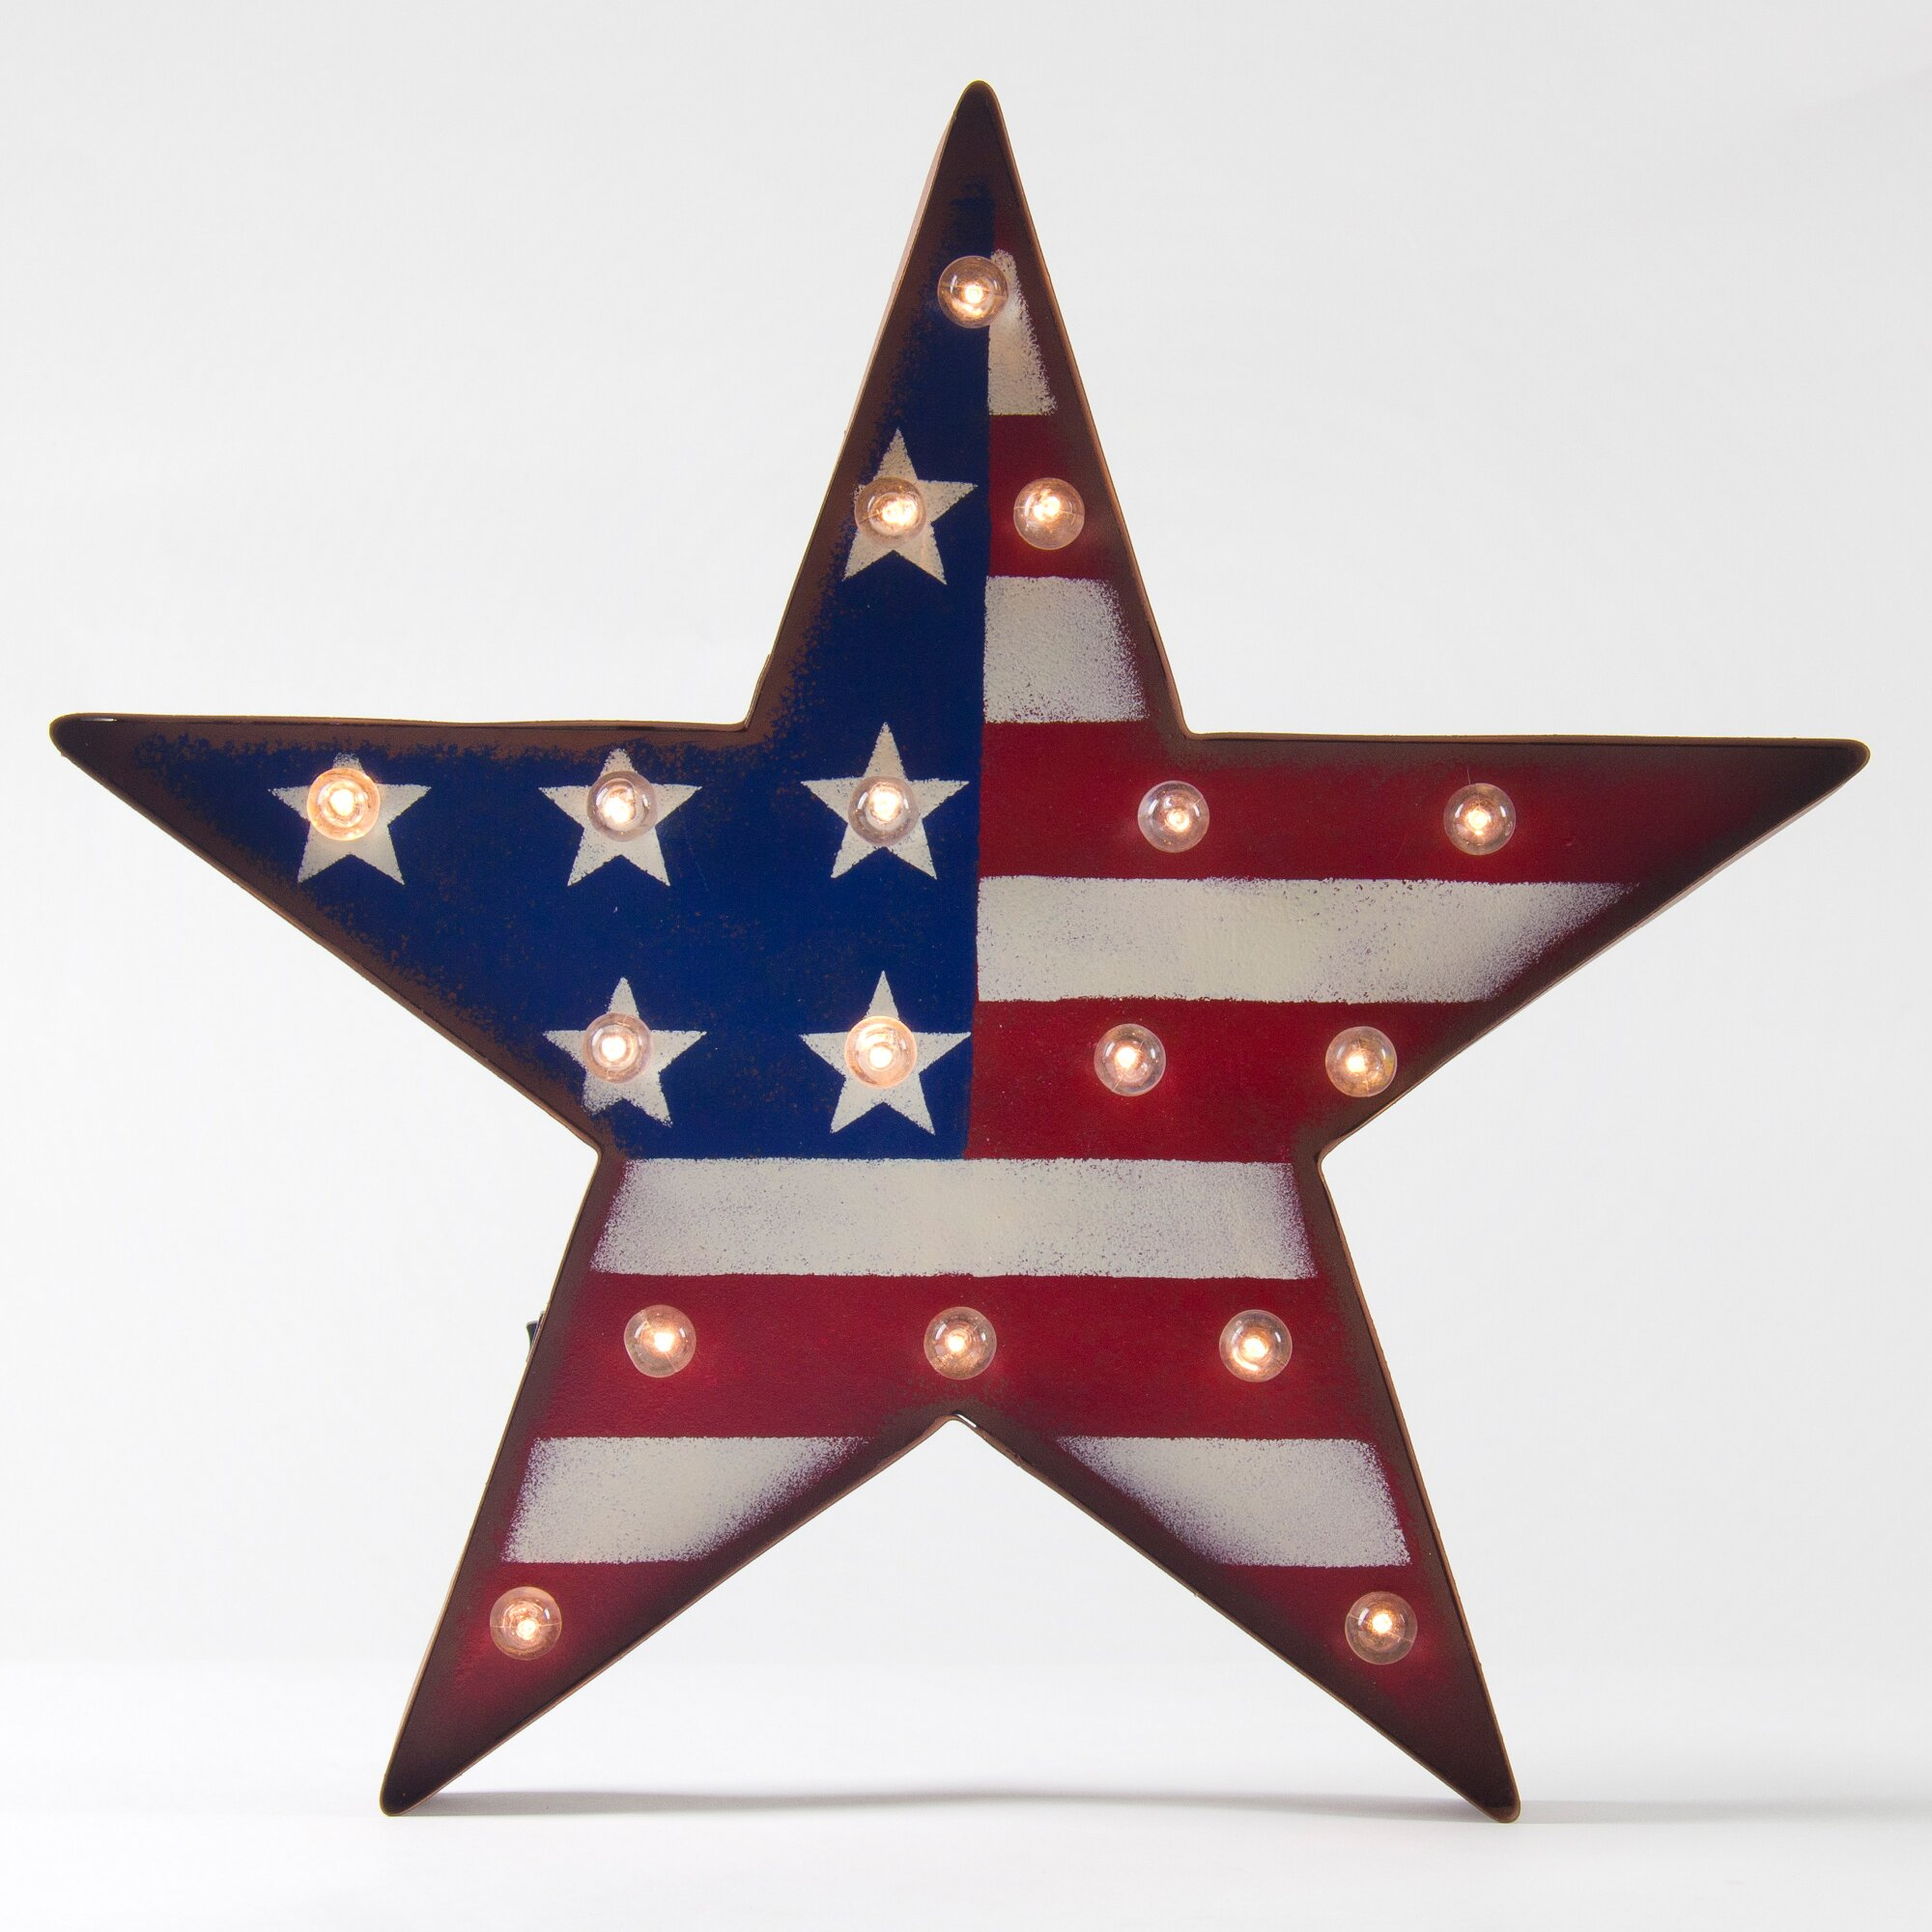 Led Sign Home Decor: Glitz Home Patriotic Marquee LED Lighted Star Sign Wall